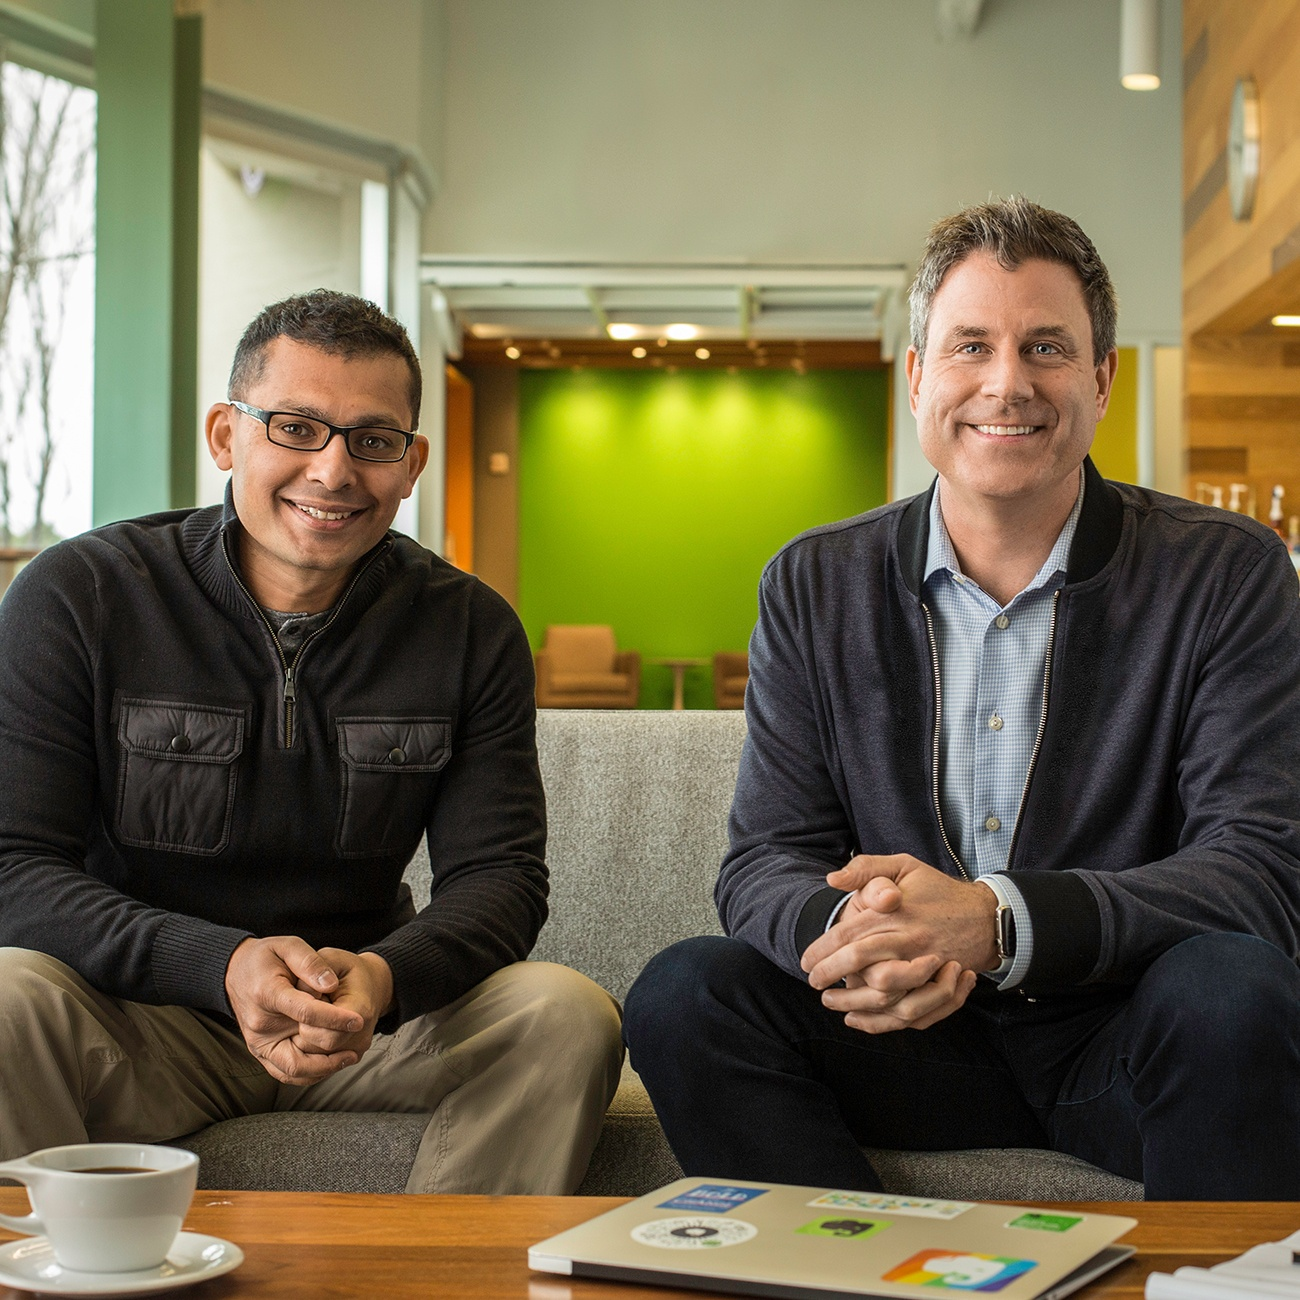 Evernote CEO Chris O'Neill and CTO Anirban Kundu at SXSW